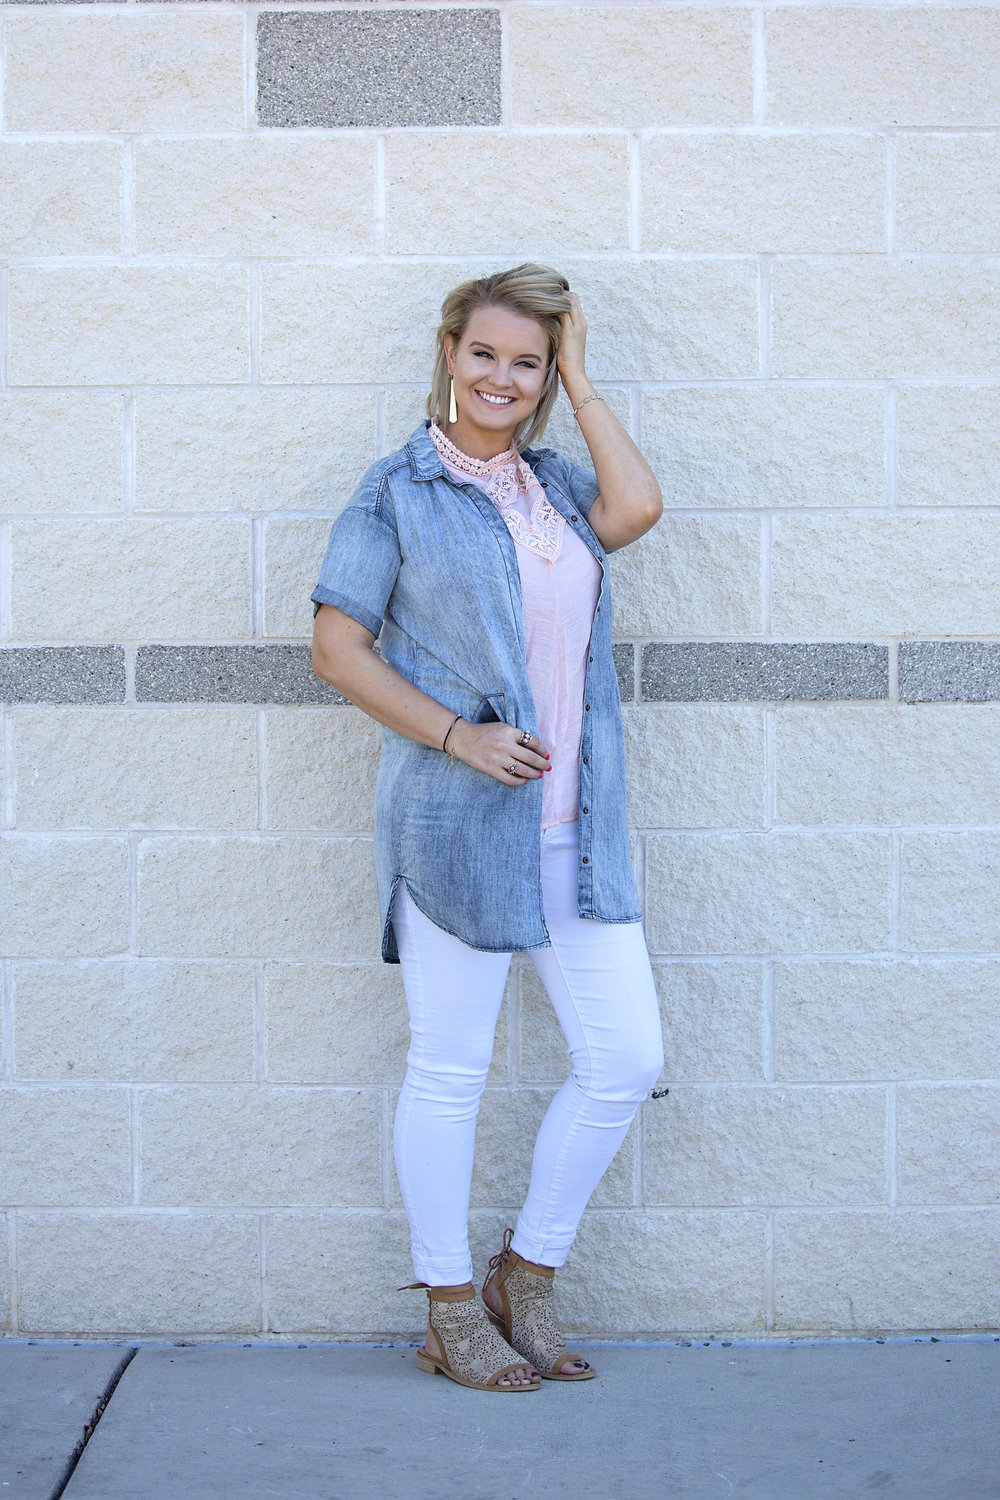 Kellea chose a pink She & Sky top with white PAIGE pants for this look.